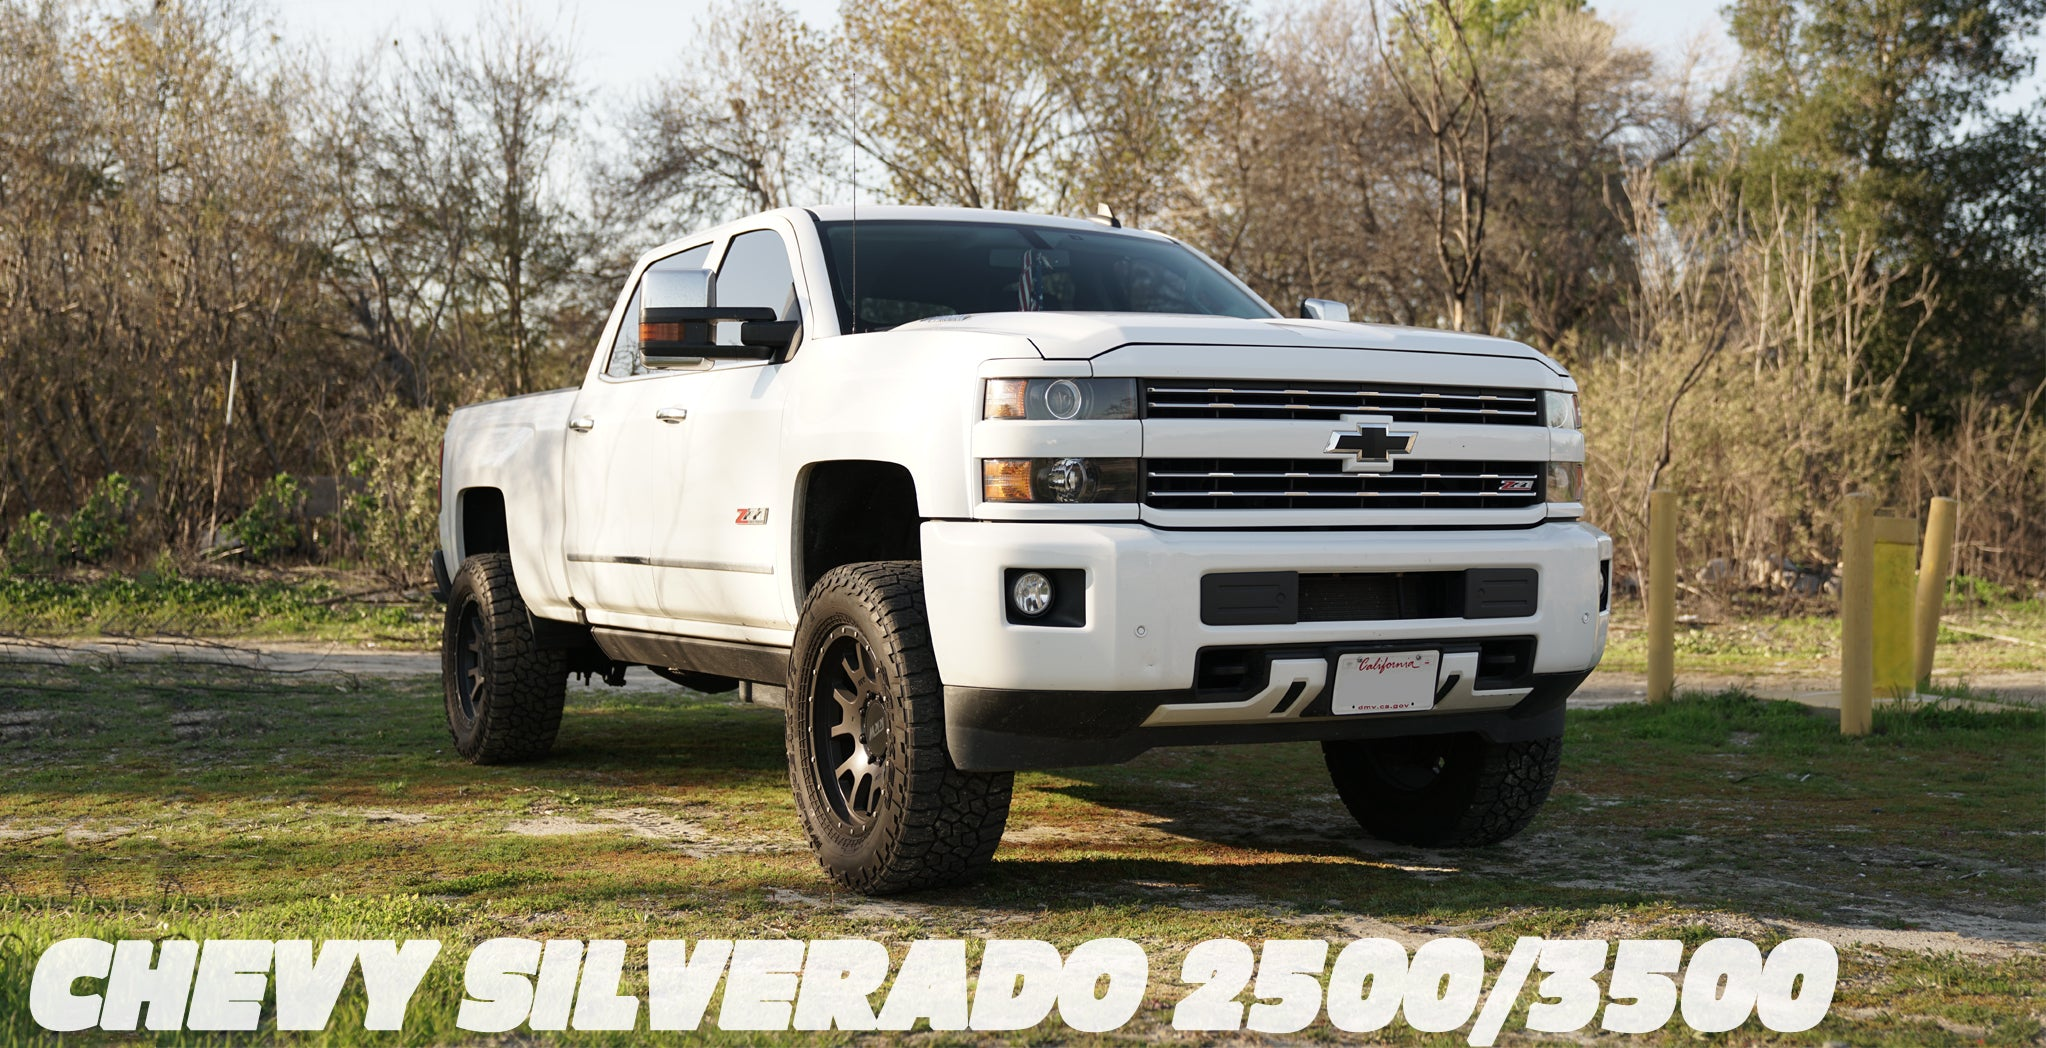 Chevy Silverado 2500 / 3500 HD Duramax | RRW - Relations Race Wheels